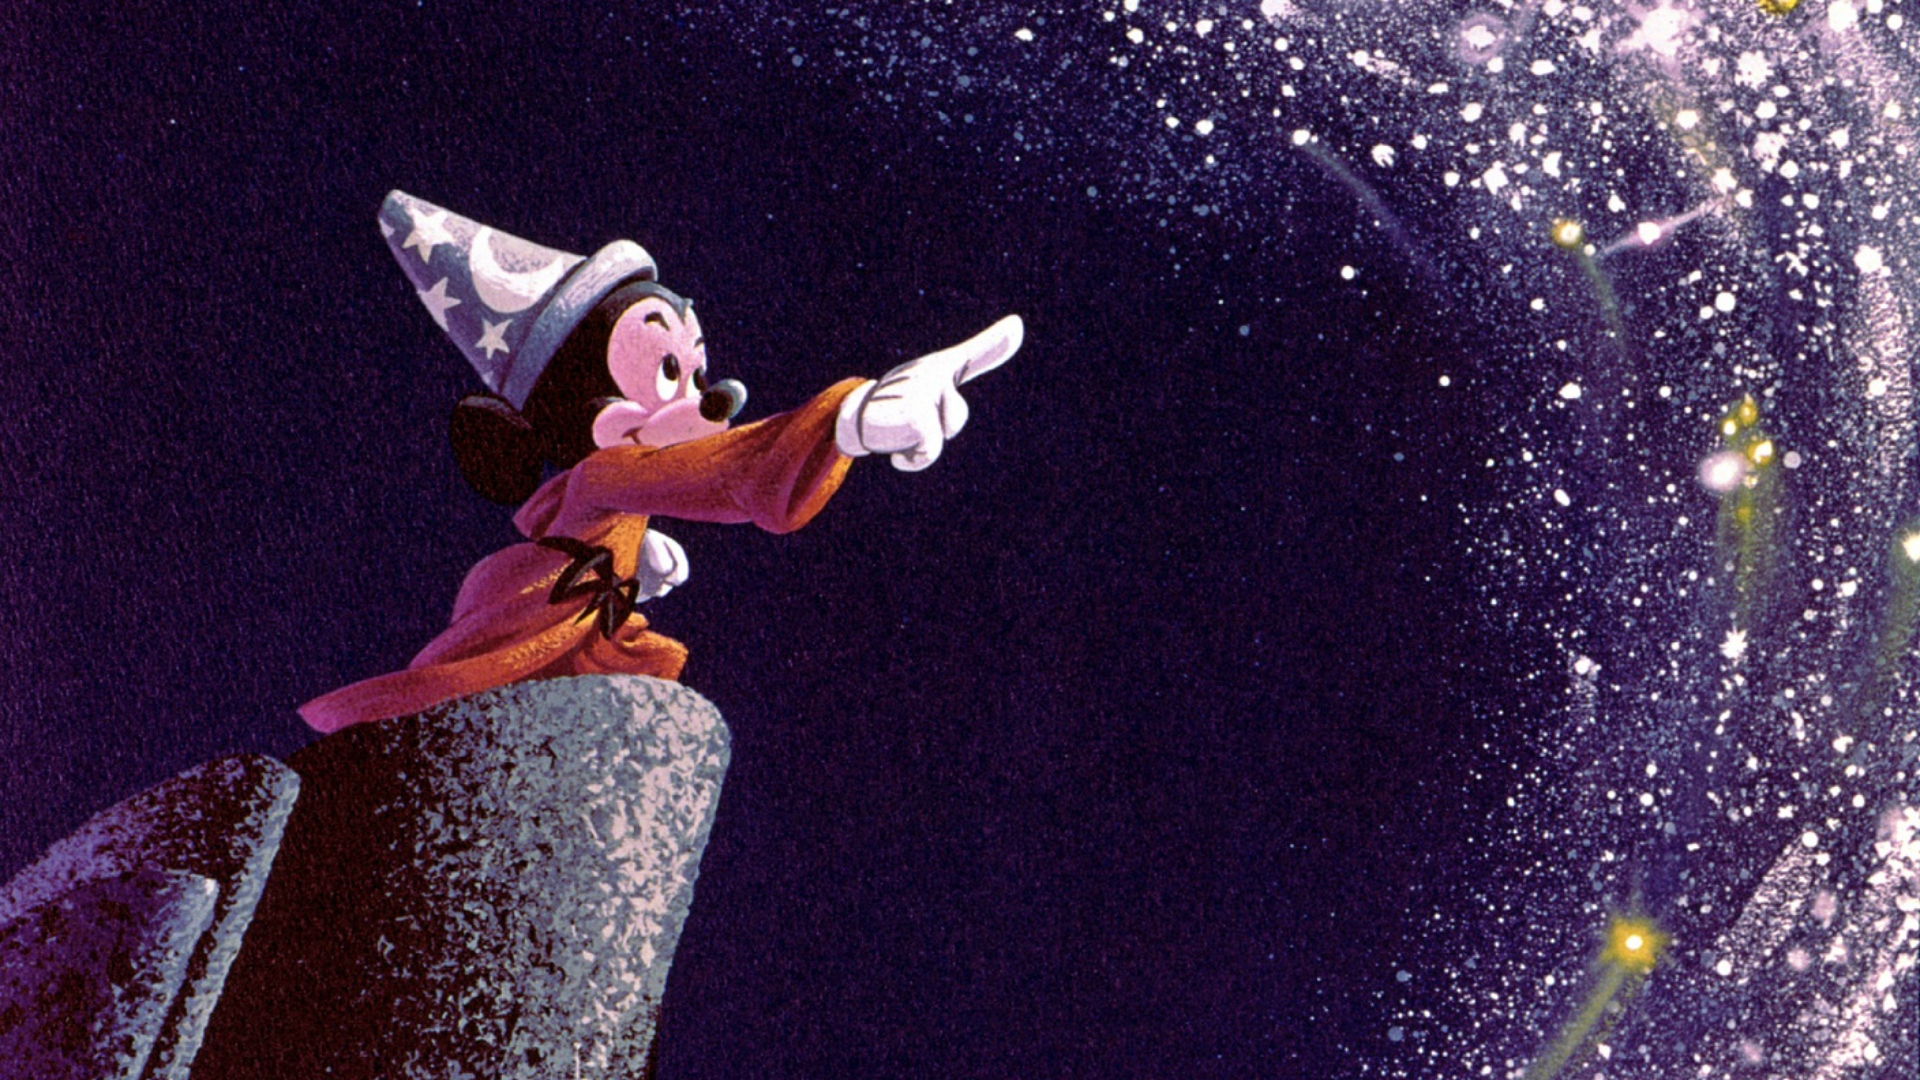 © Disney. Artwork of Sorcerer's Apprentice Mickey from Walt Disney's Fantasia, which provided the inspiration for The Vaults presents Sounds and Sorcery, celebrating Disney Fantasia. Image courtesy of The Corner Shop PR.